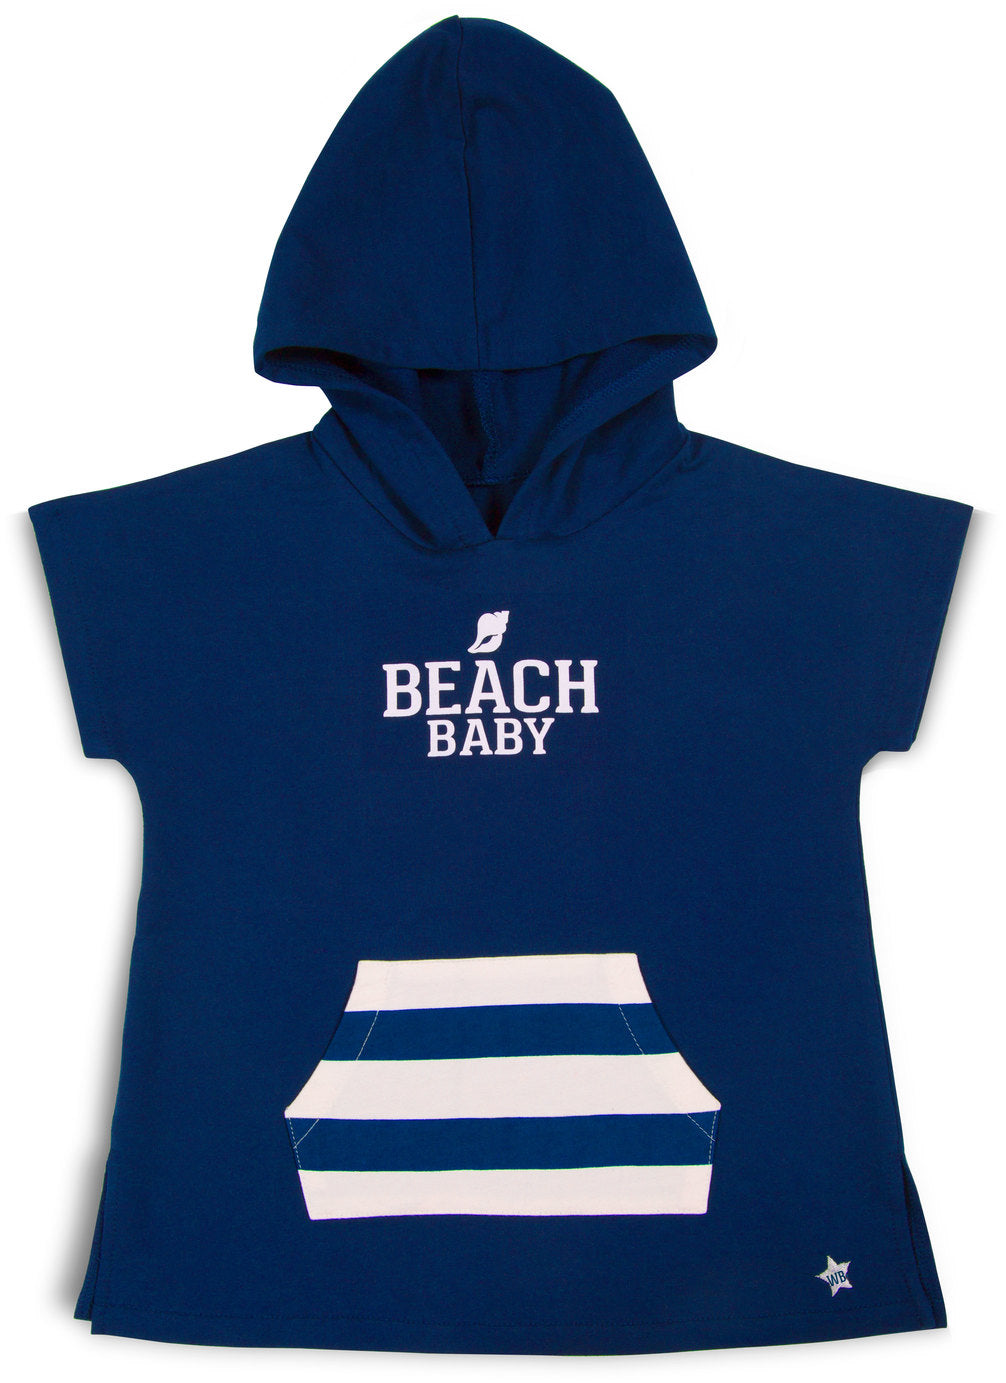 Beach Baby No Sleeve French Terry Cloth Hoodie (2T - 3T) Terry Cloth Hoodie We Baby - GigglesGear.com